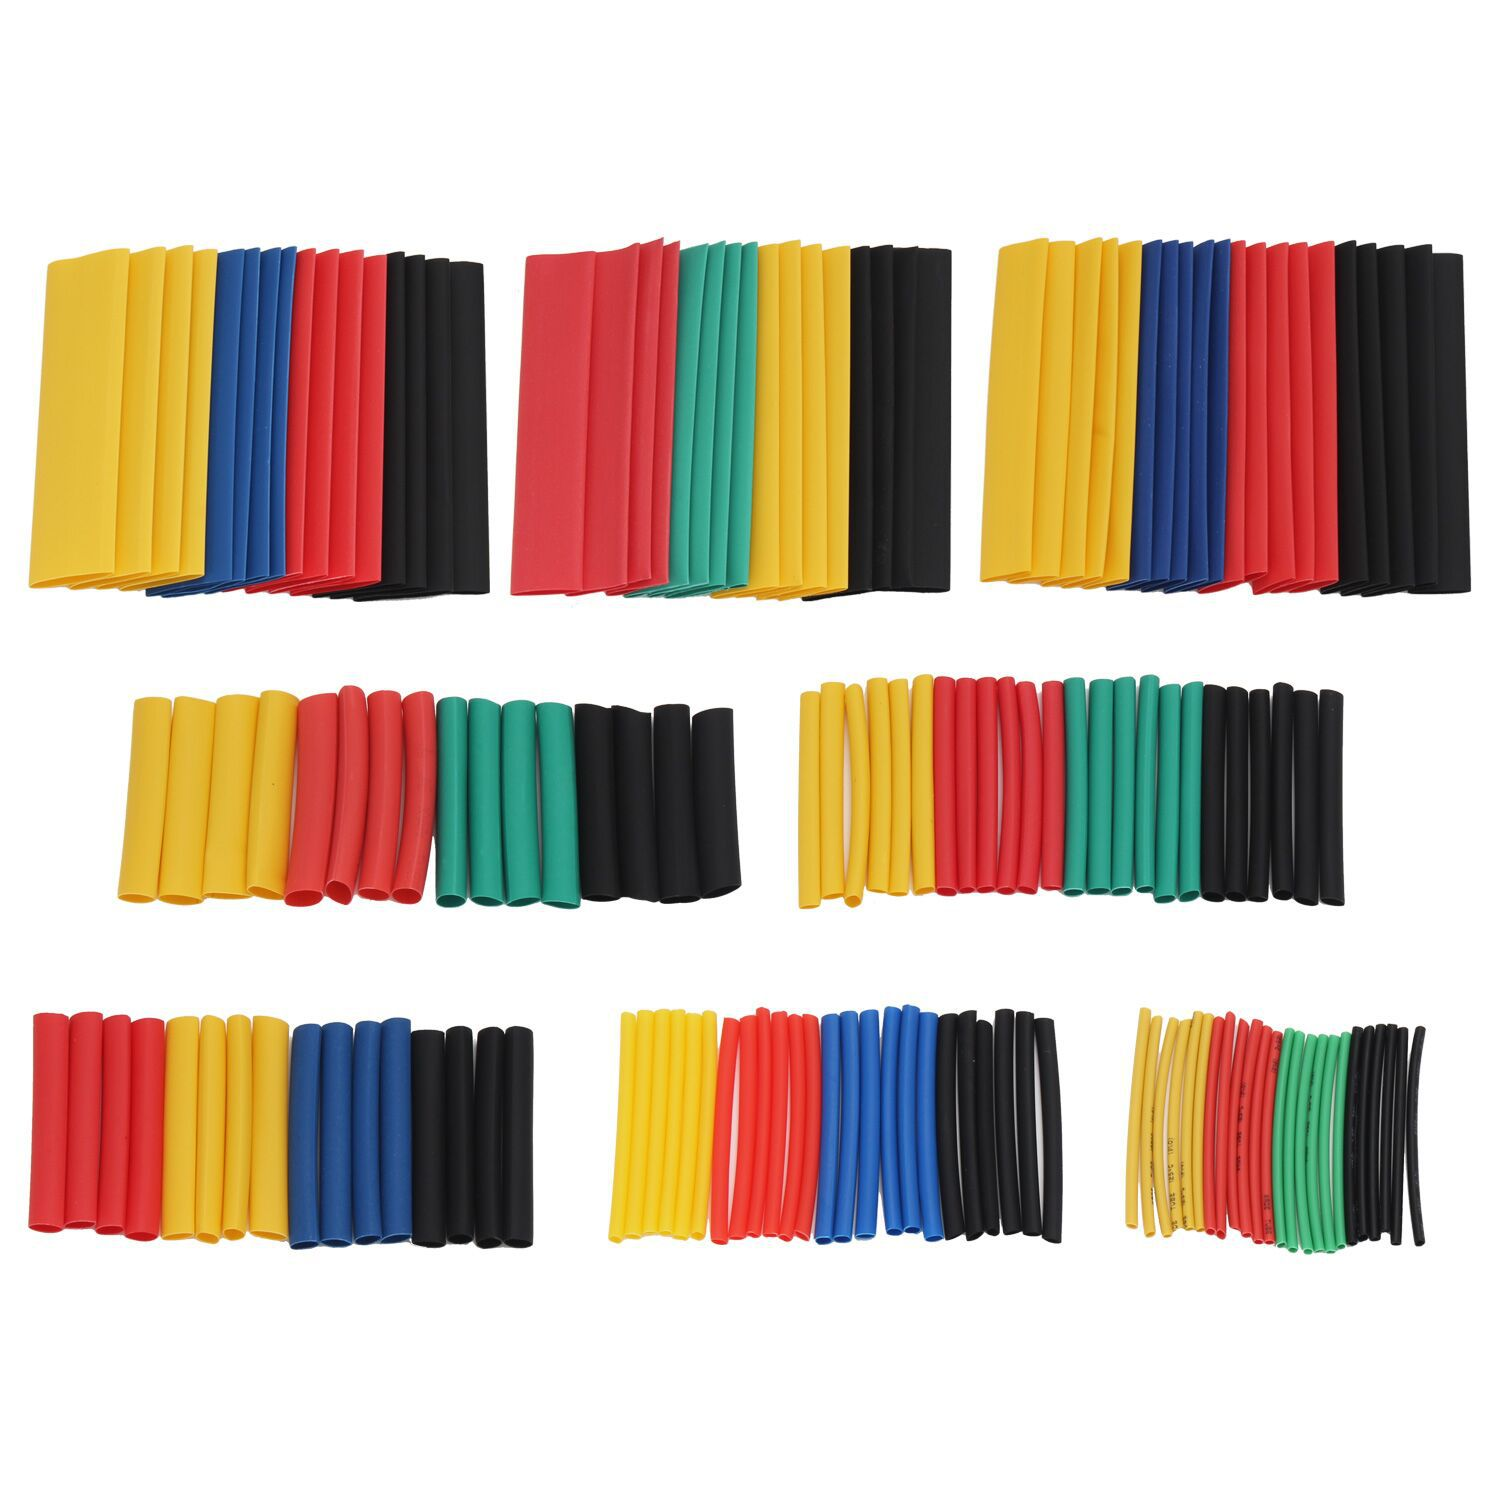 Cross Border 328 PCs Color Environmentally Friendly Waterproof Heat Shrink Tube Flame Retardant Heat Shrinkable Insulation Casin